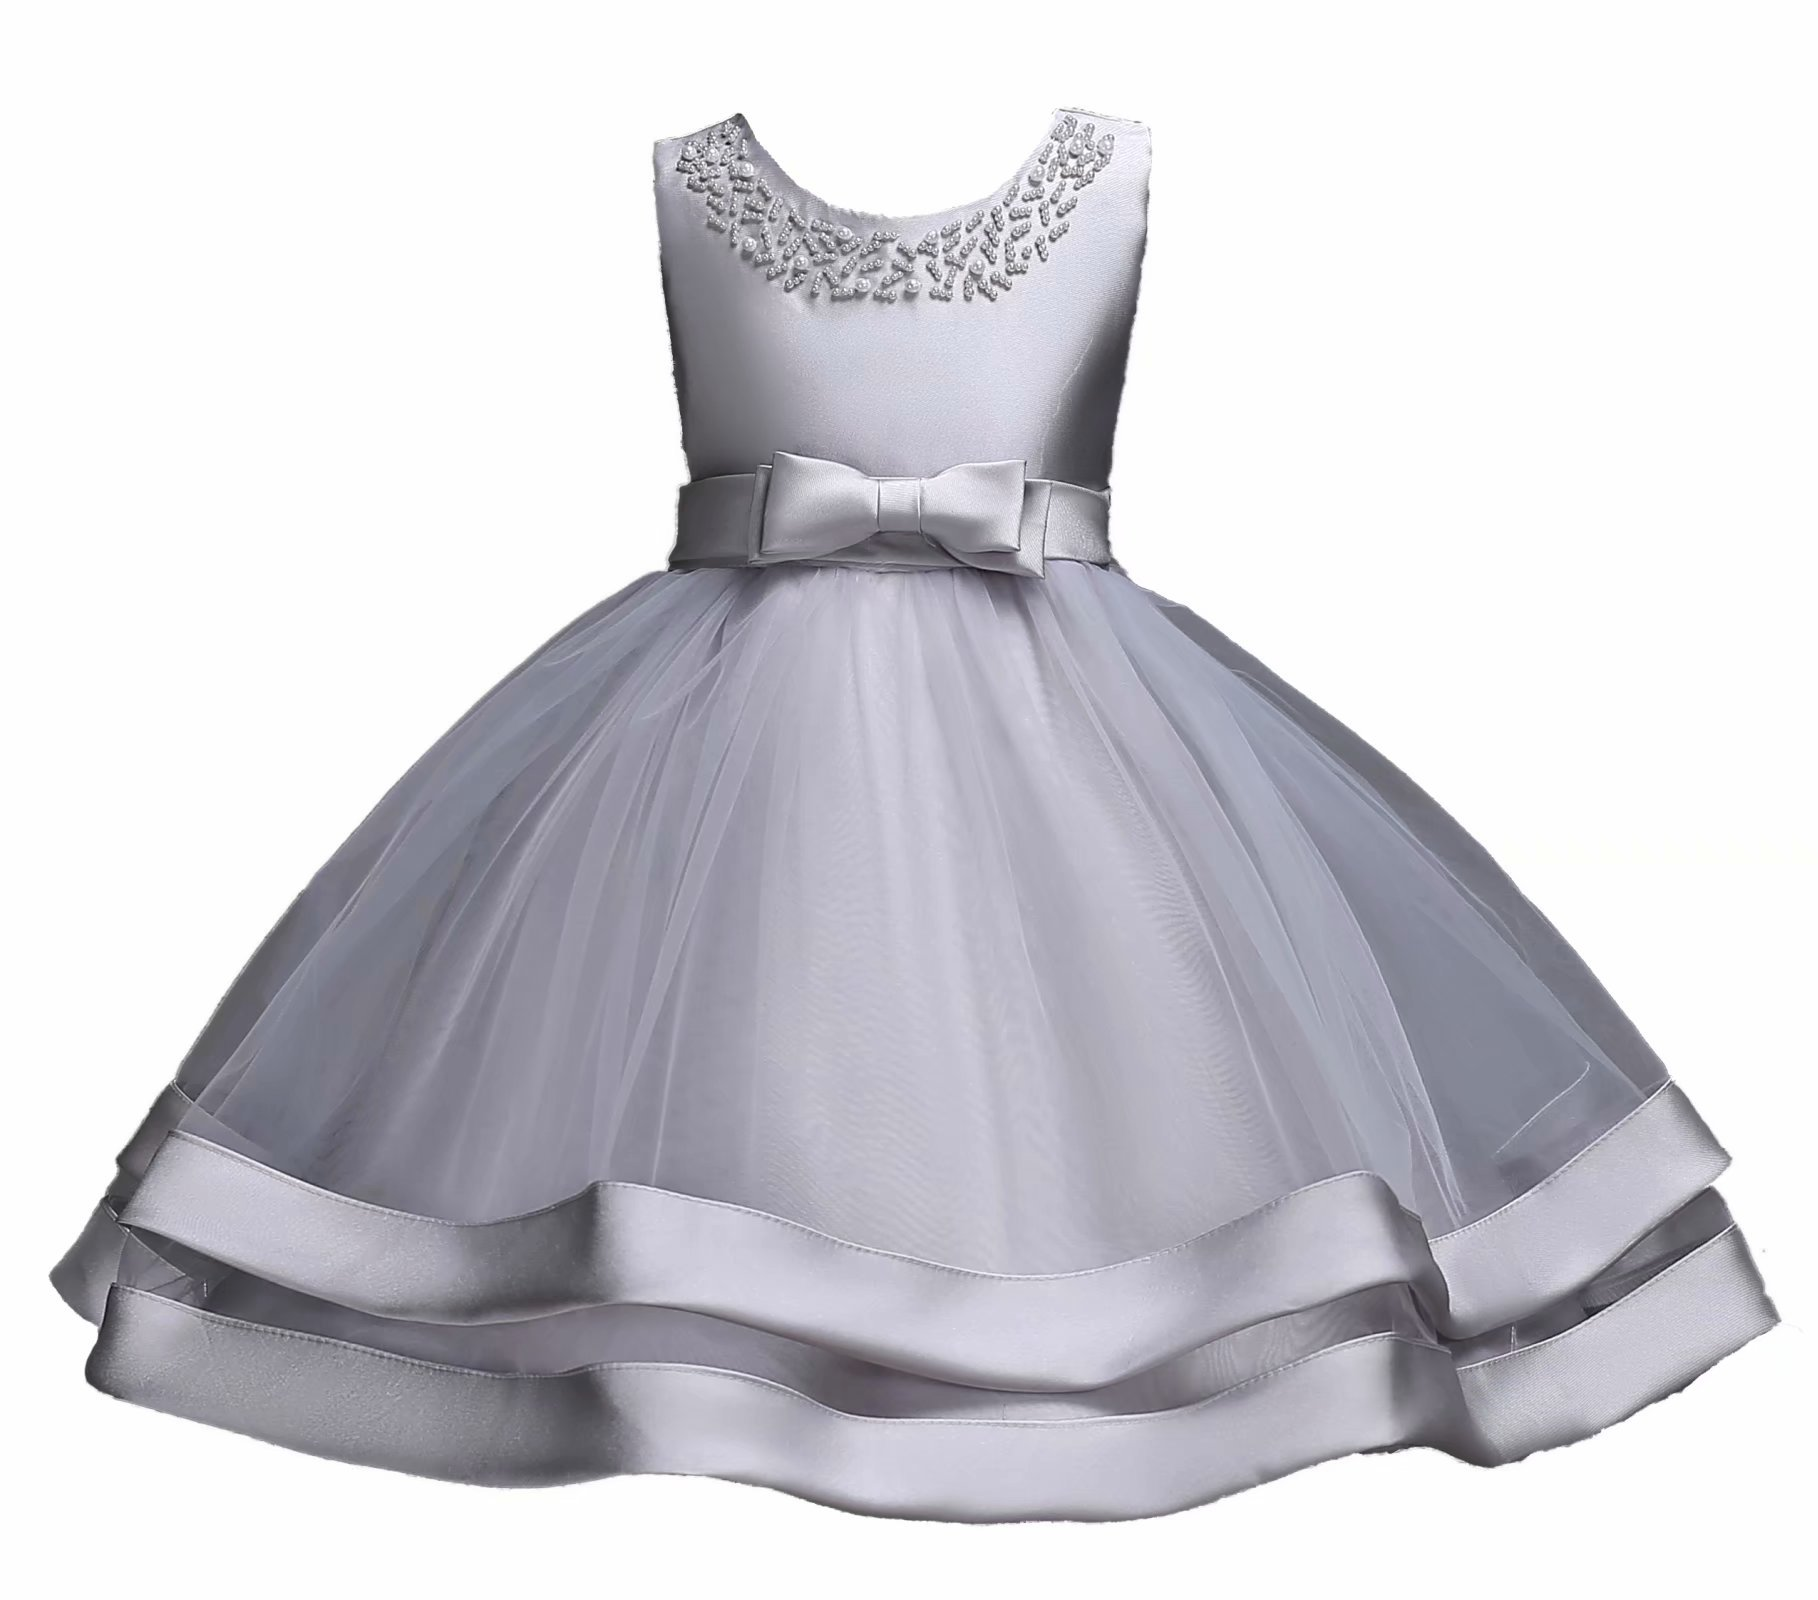 AYOMIS Girls Lace Bridesmaid Dress Wedding Pageant Dresses Tulle Party Gown Age 3-9Y(Gray,8-9Y)